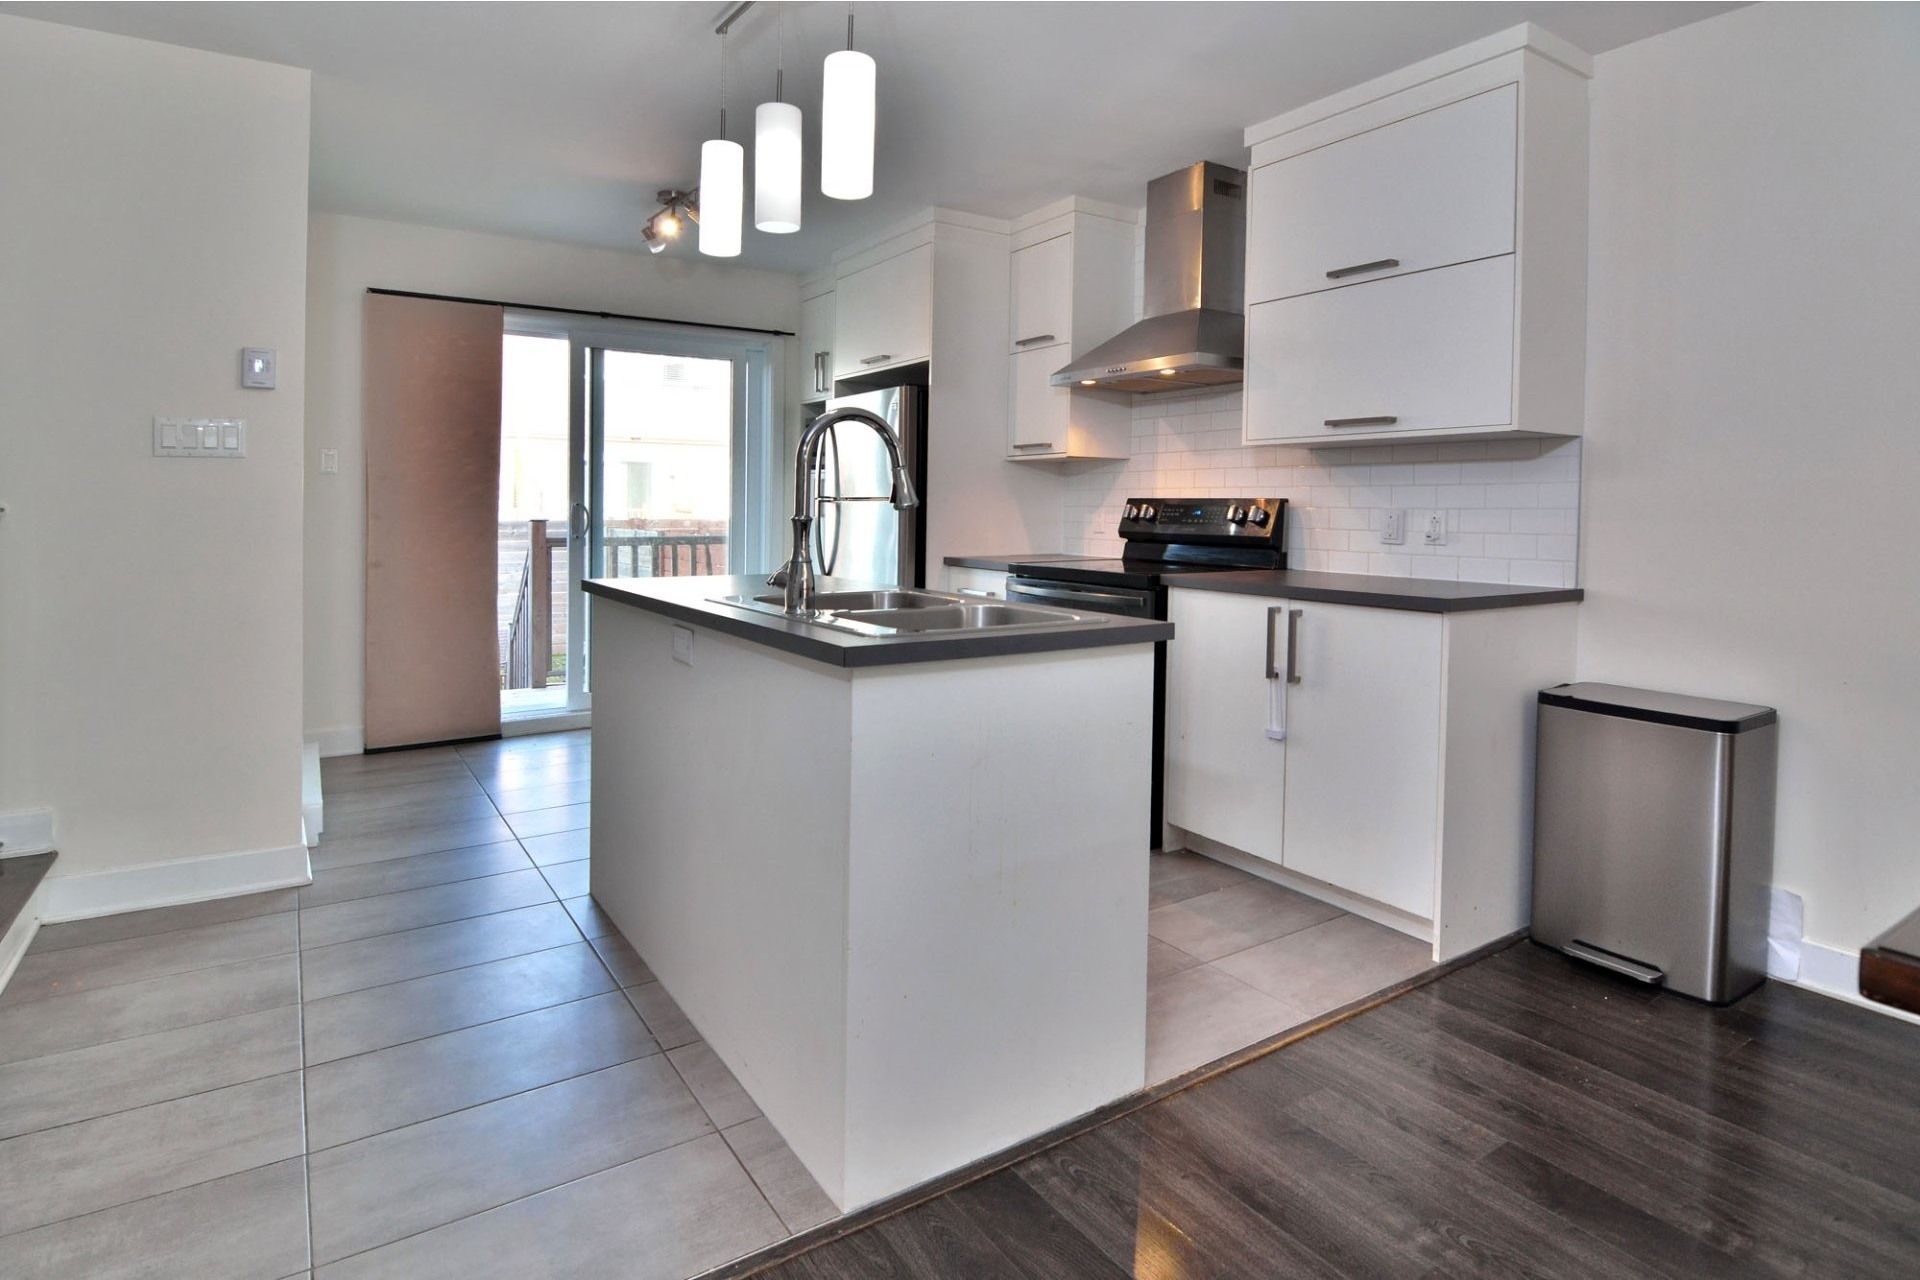 image 9 - House For sale Vaudreuil-Dorion - 7 rooms